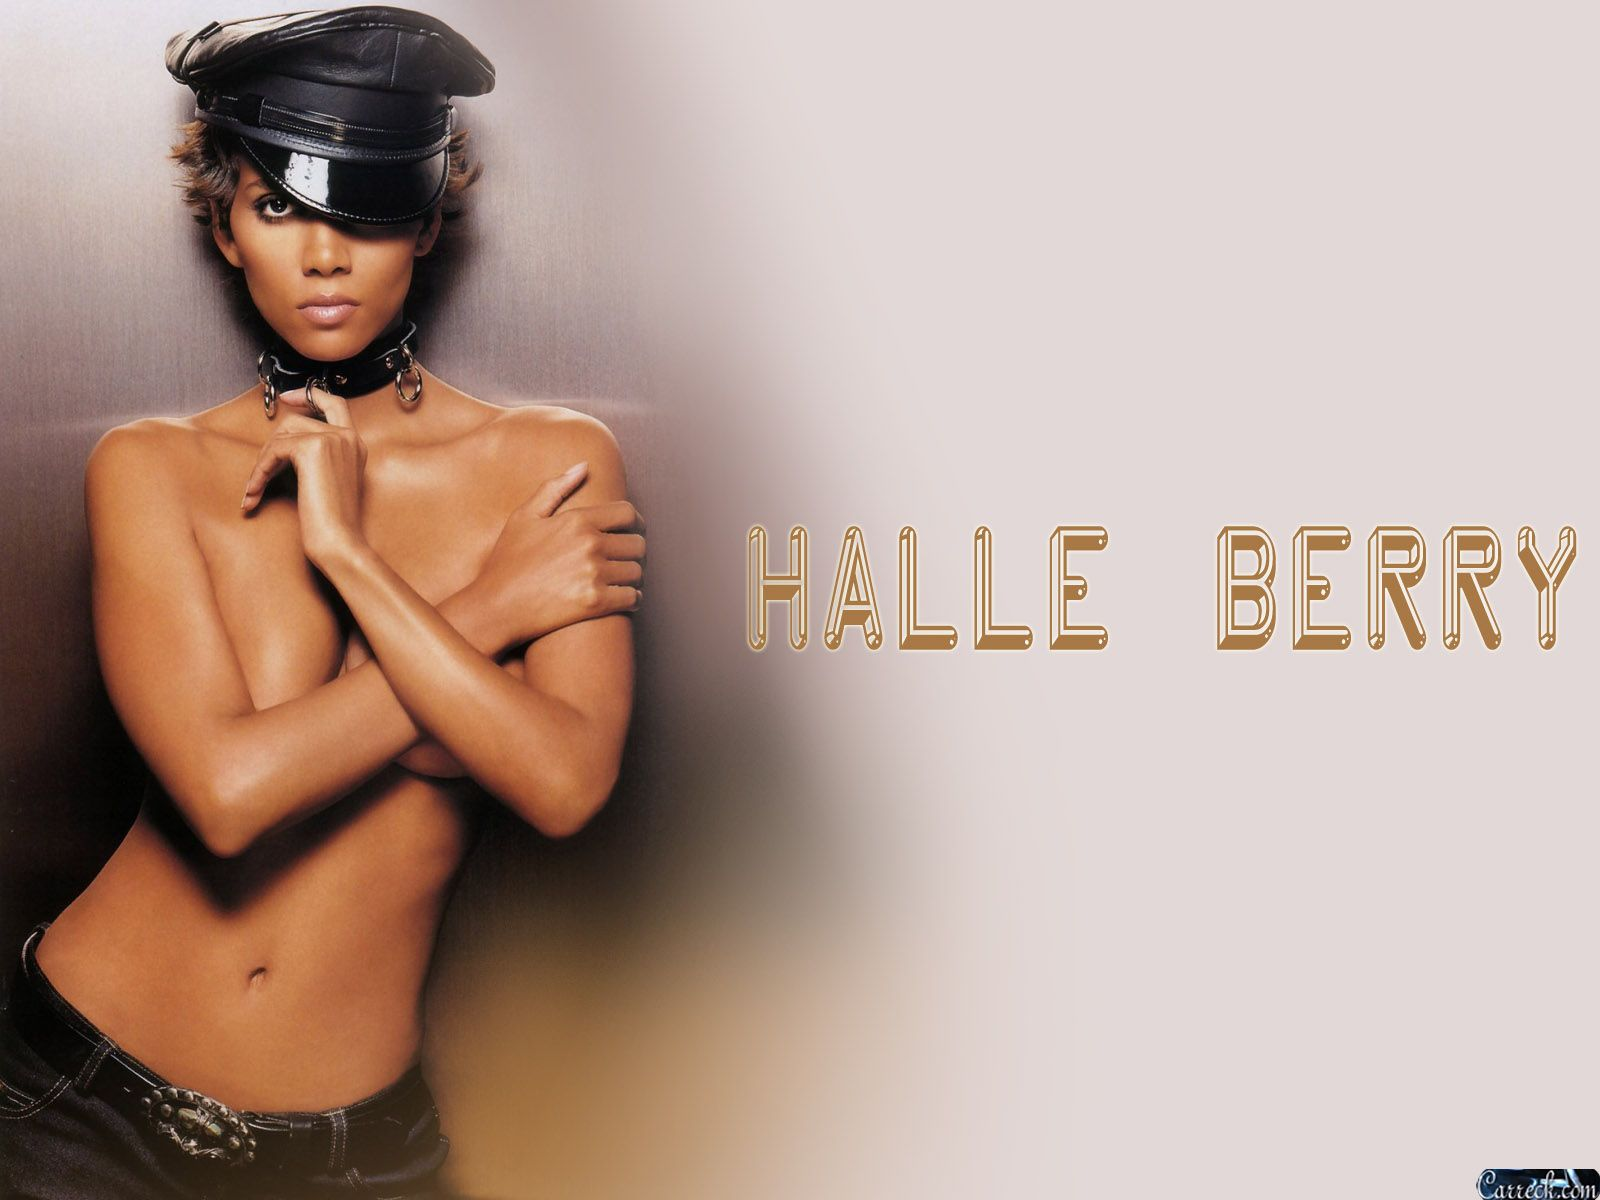 1600x1200 - Halle Berry Wallpapers 36